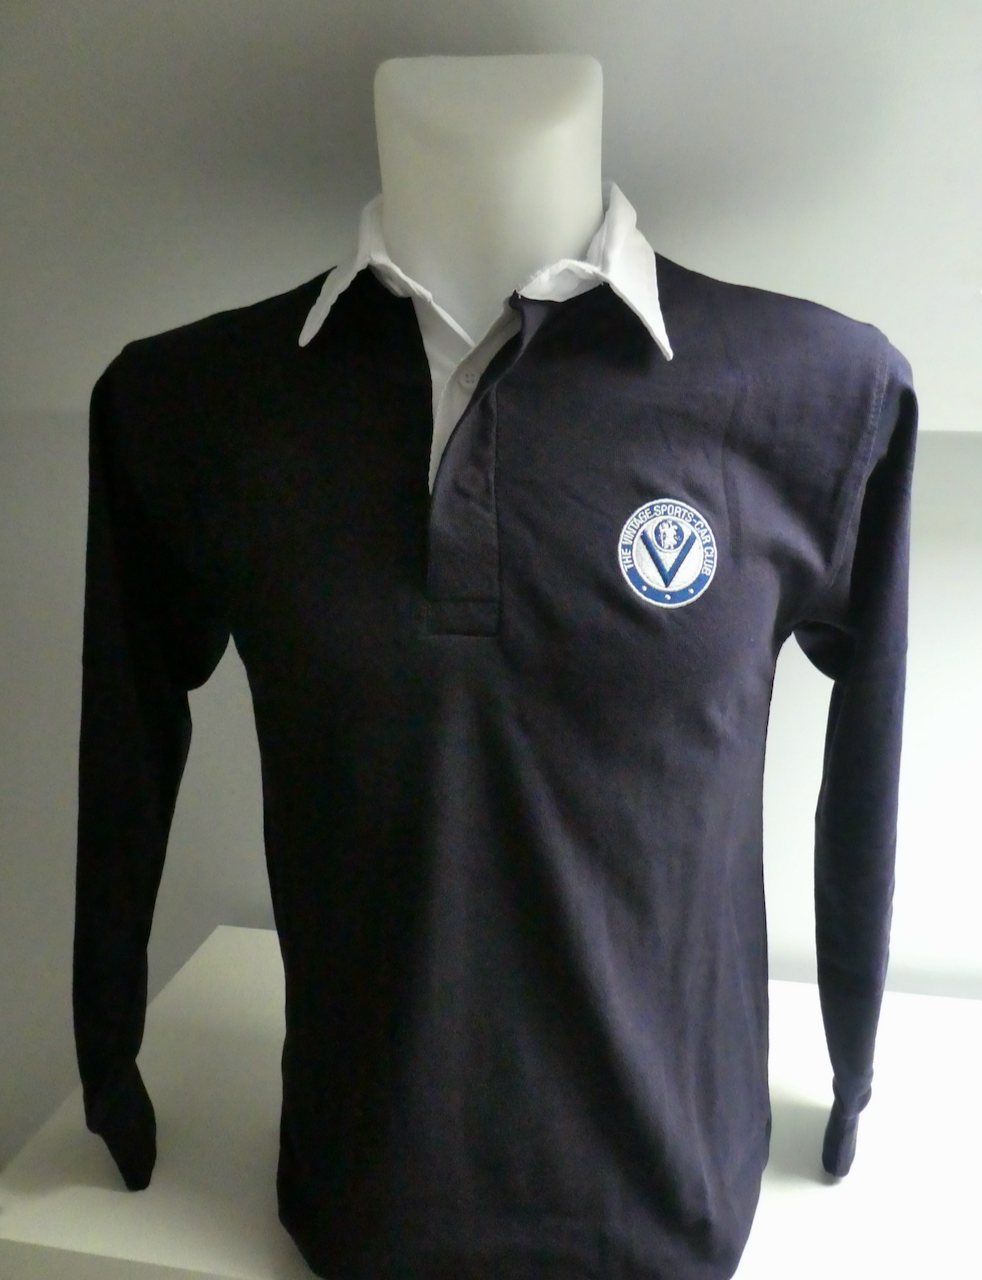 Rugby Shirt - VSCC Logo cover